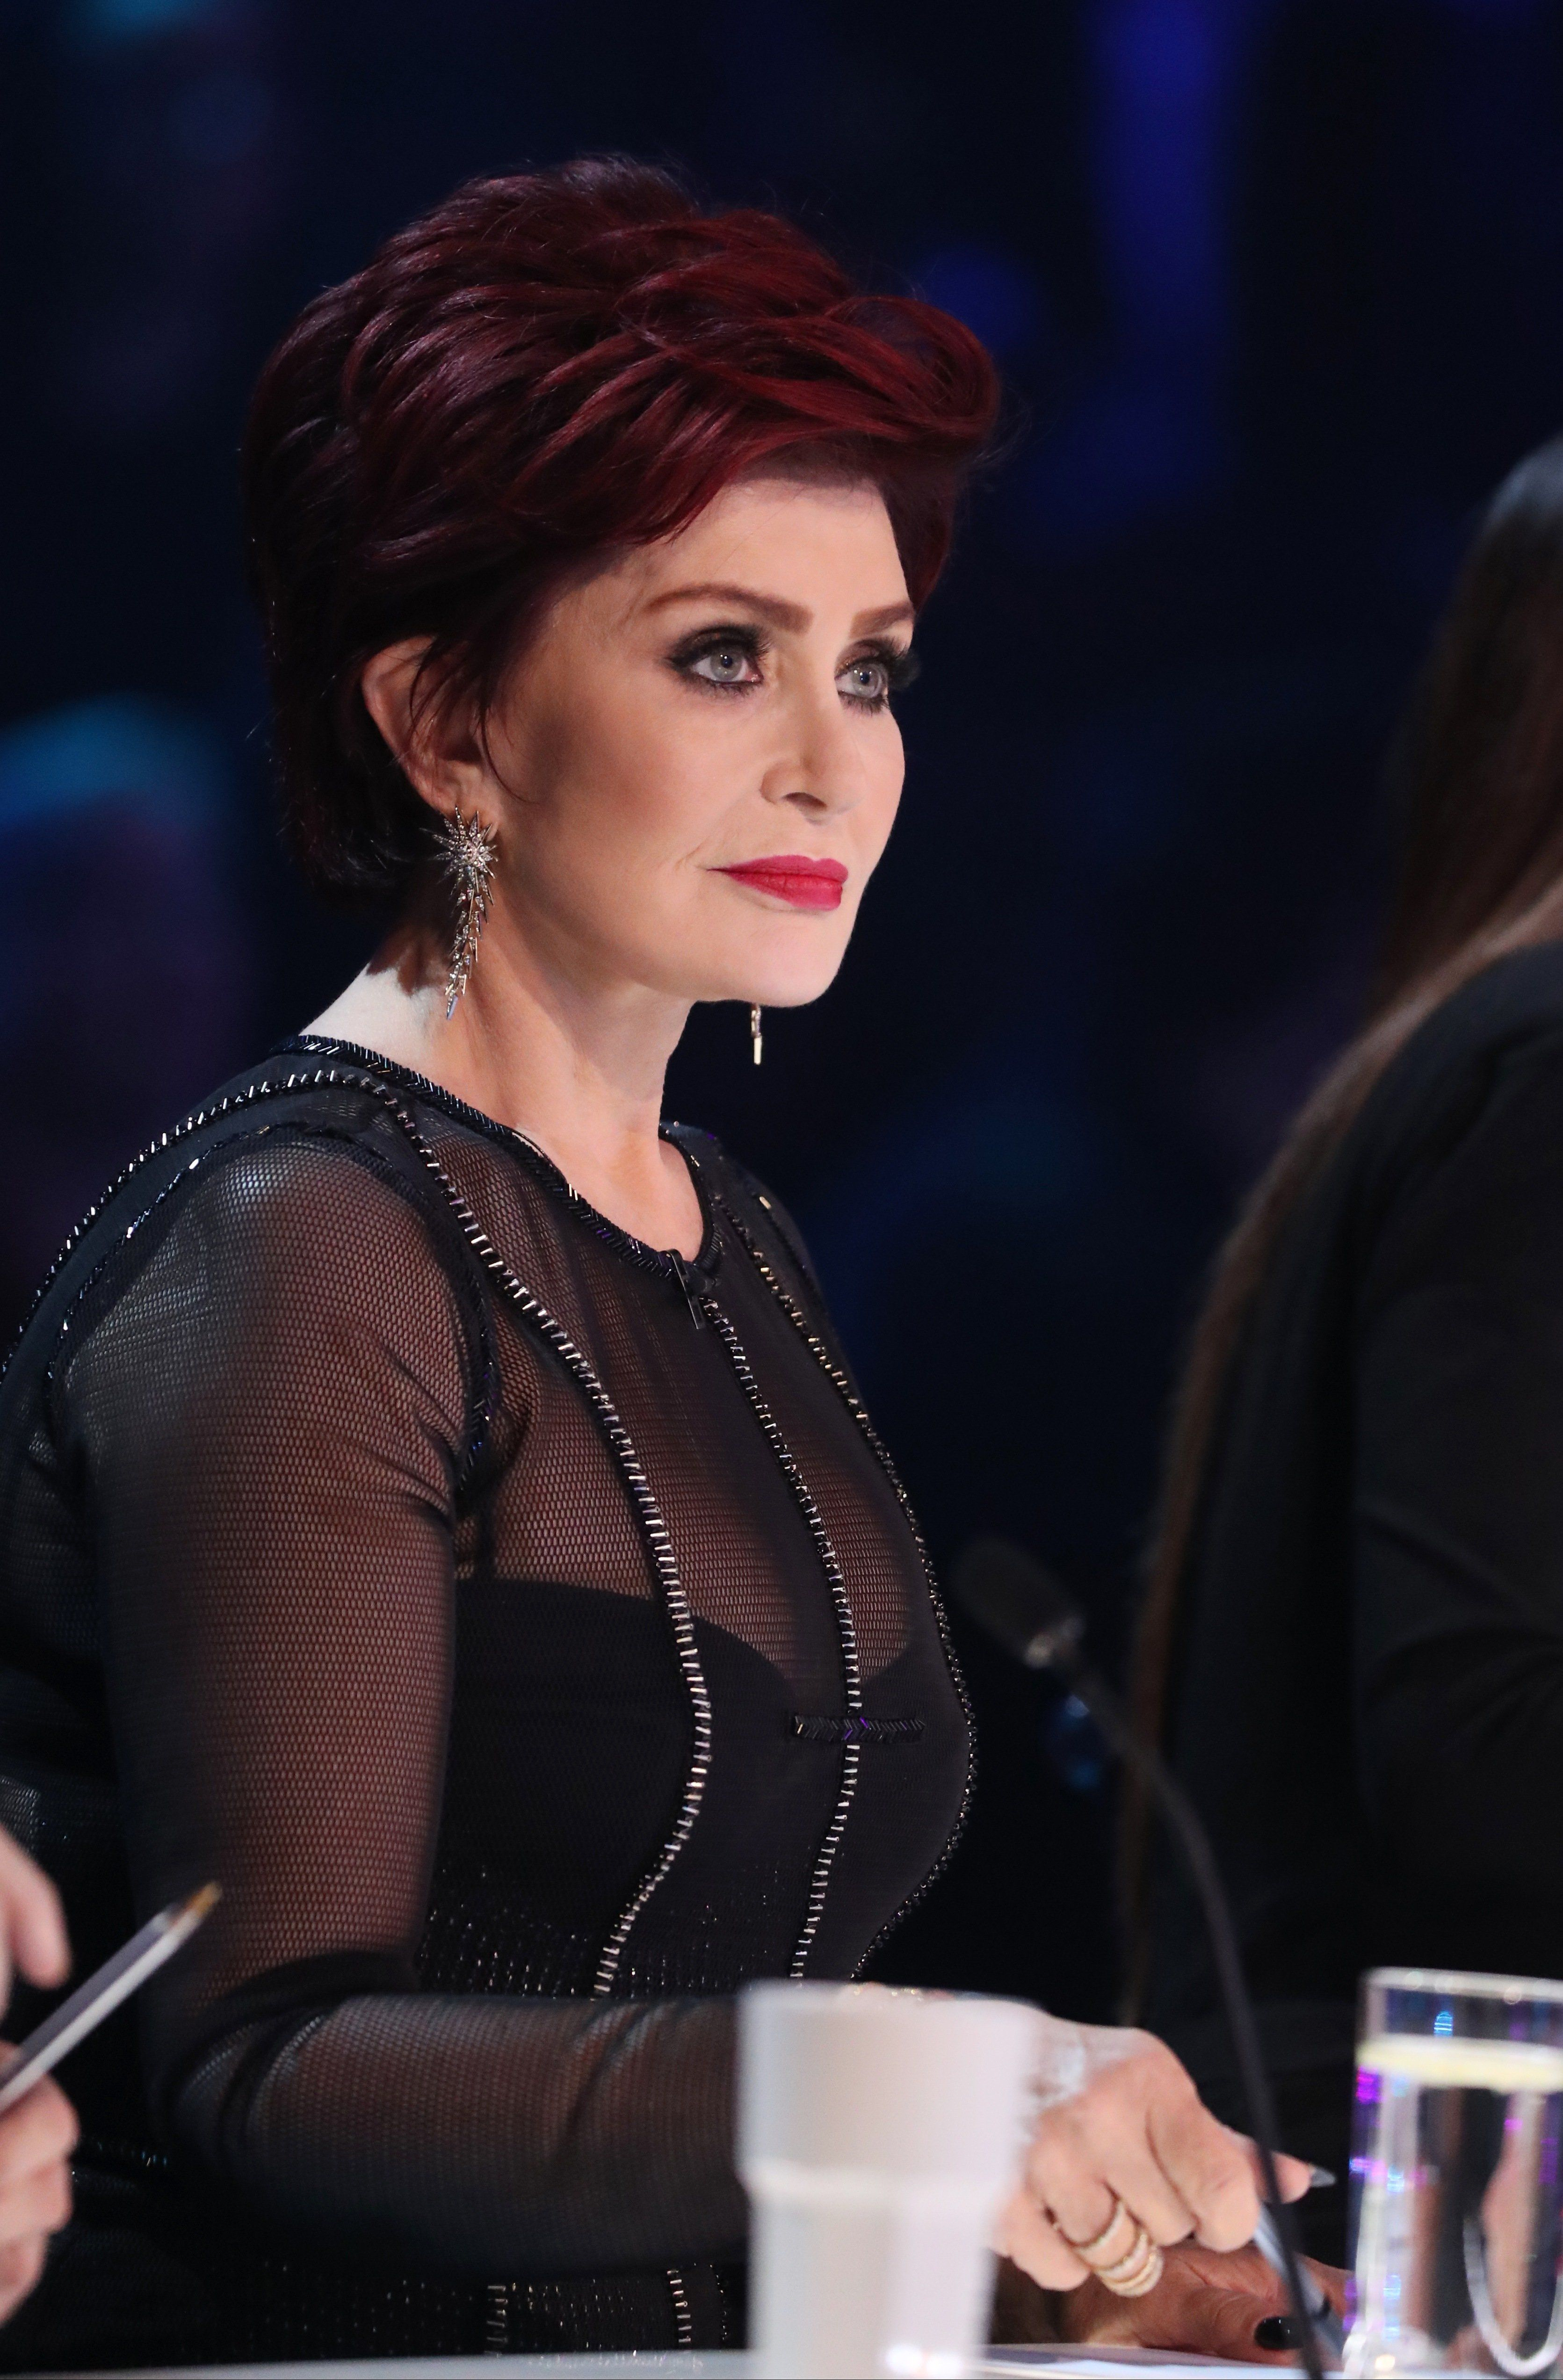 X Factor's Sharon Osbourne 'Desperate' To Return, But Her US TV Bosses May Not Be